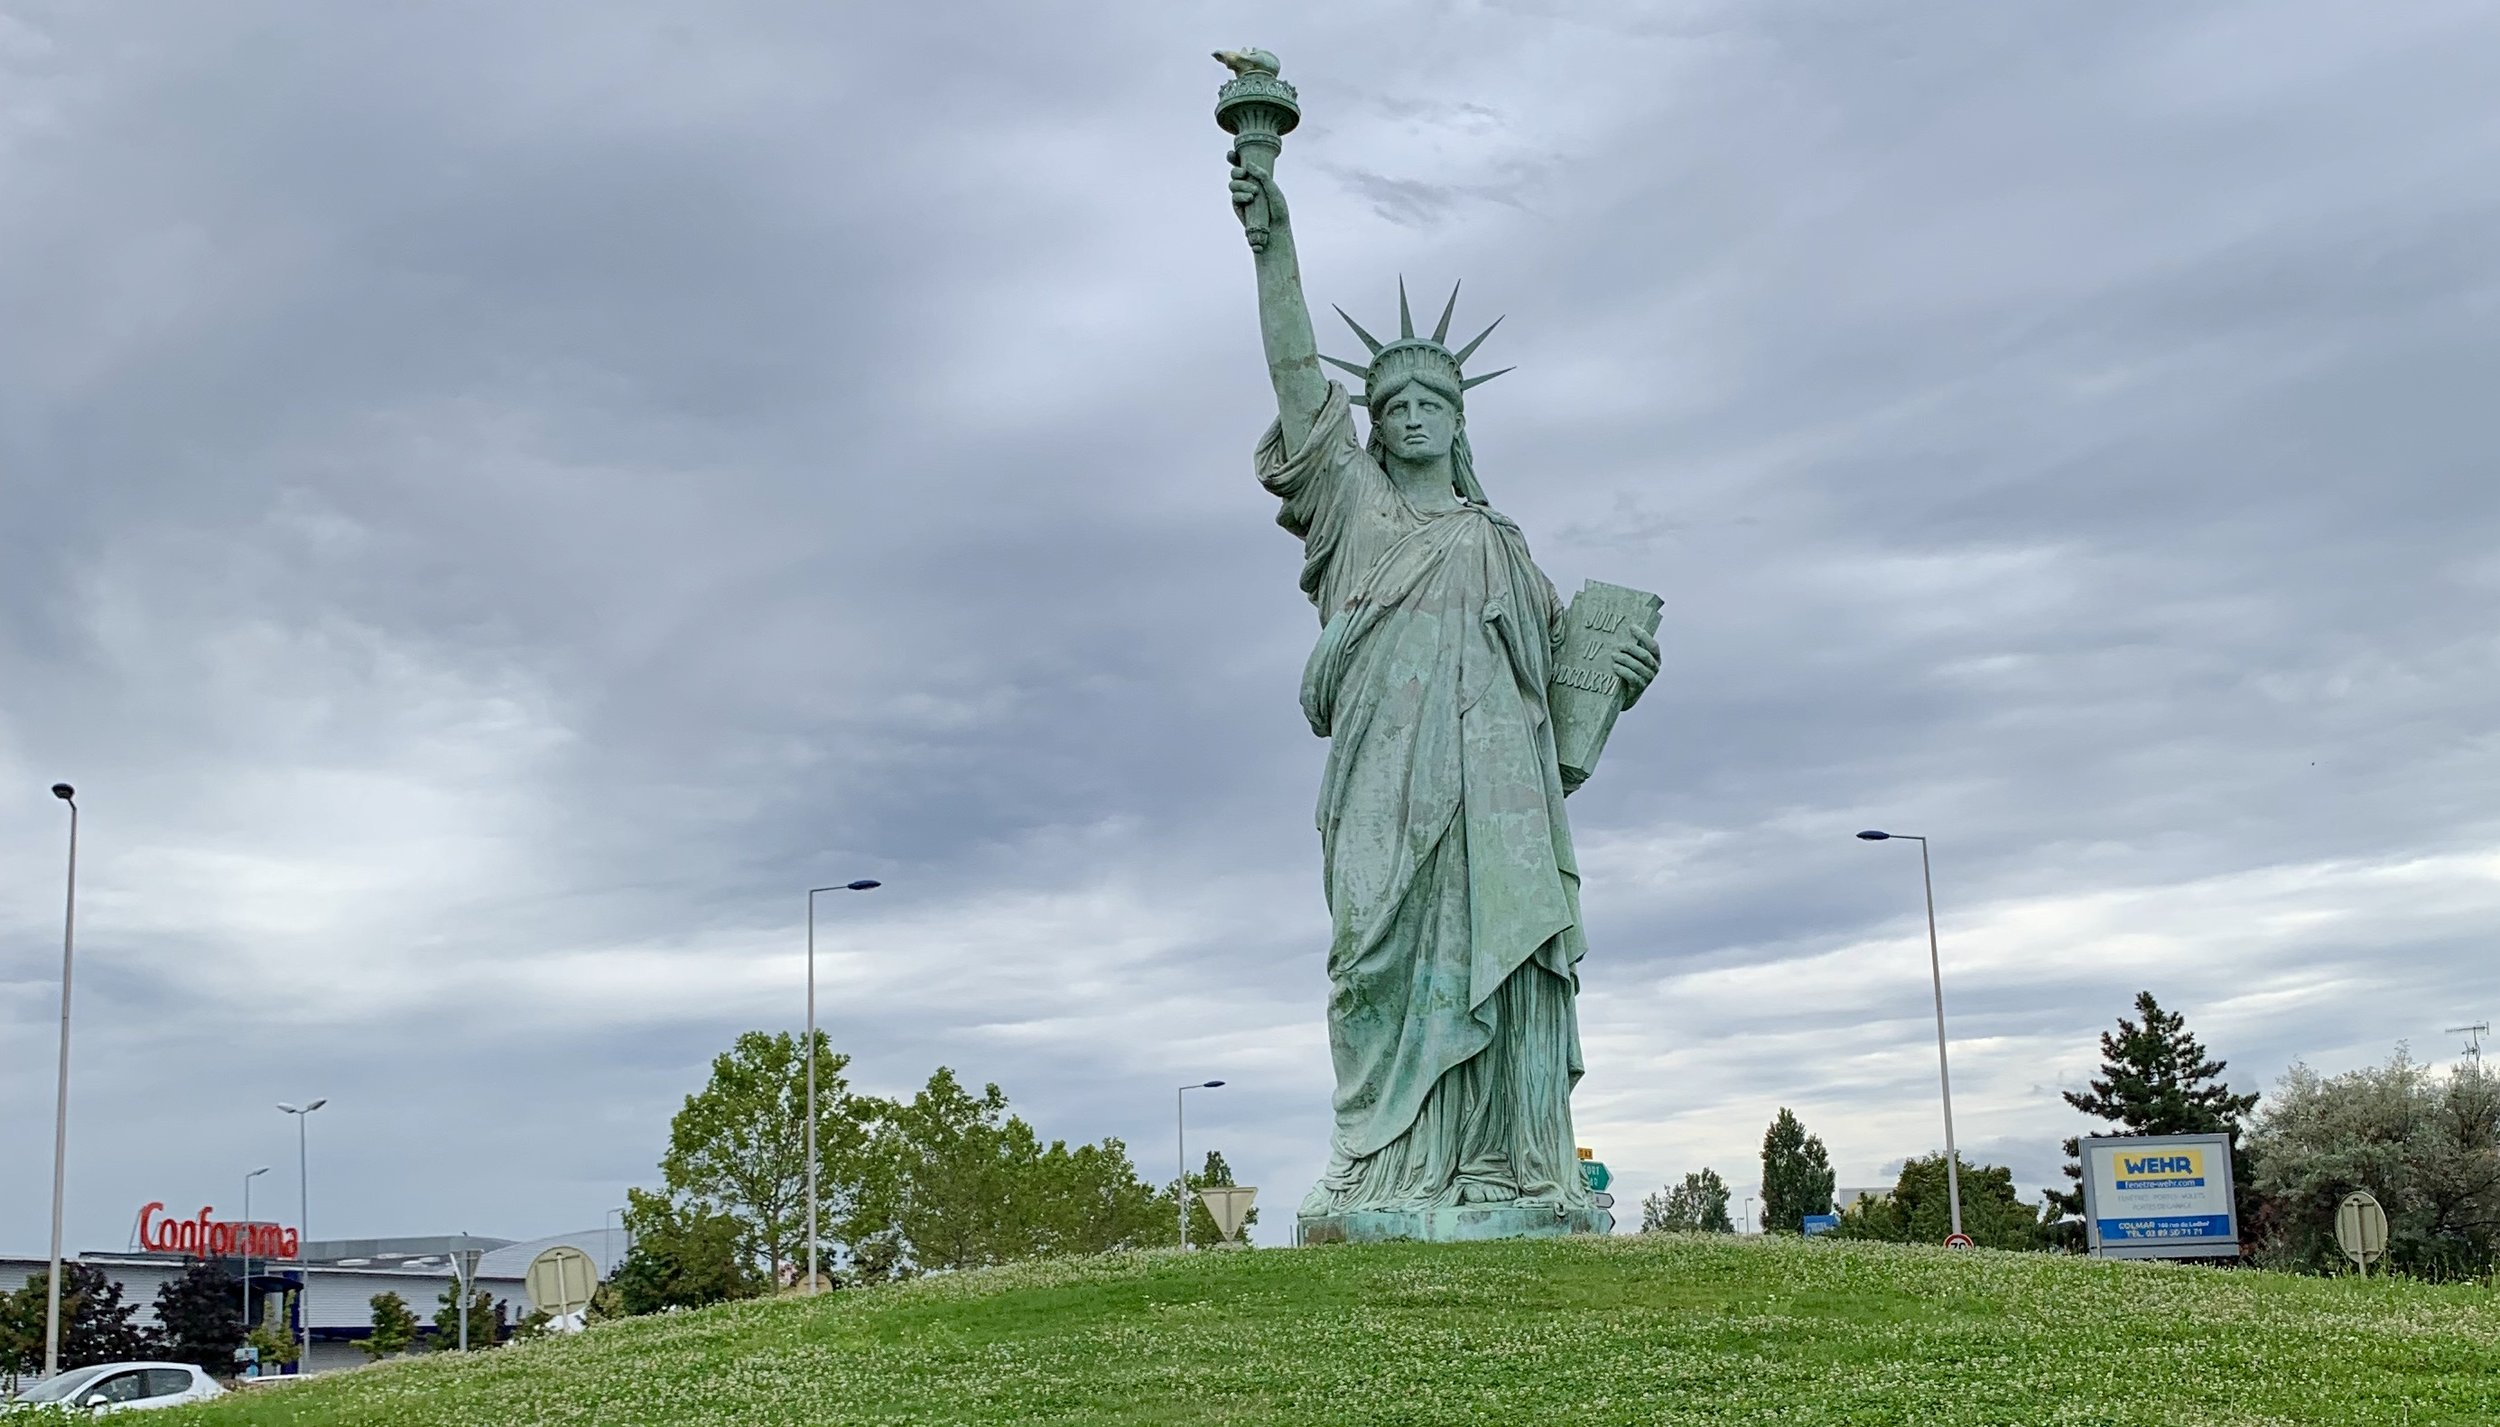 A Statue of Liberty replica on a roundabout in Colmar, France. August 10, 2019.